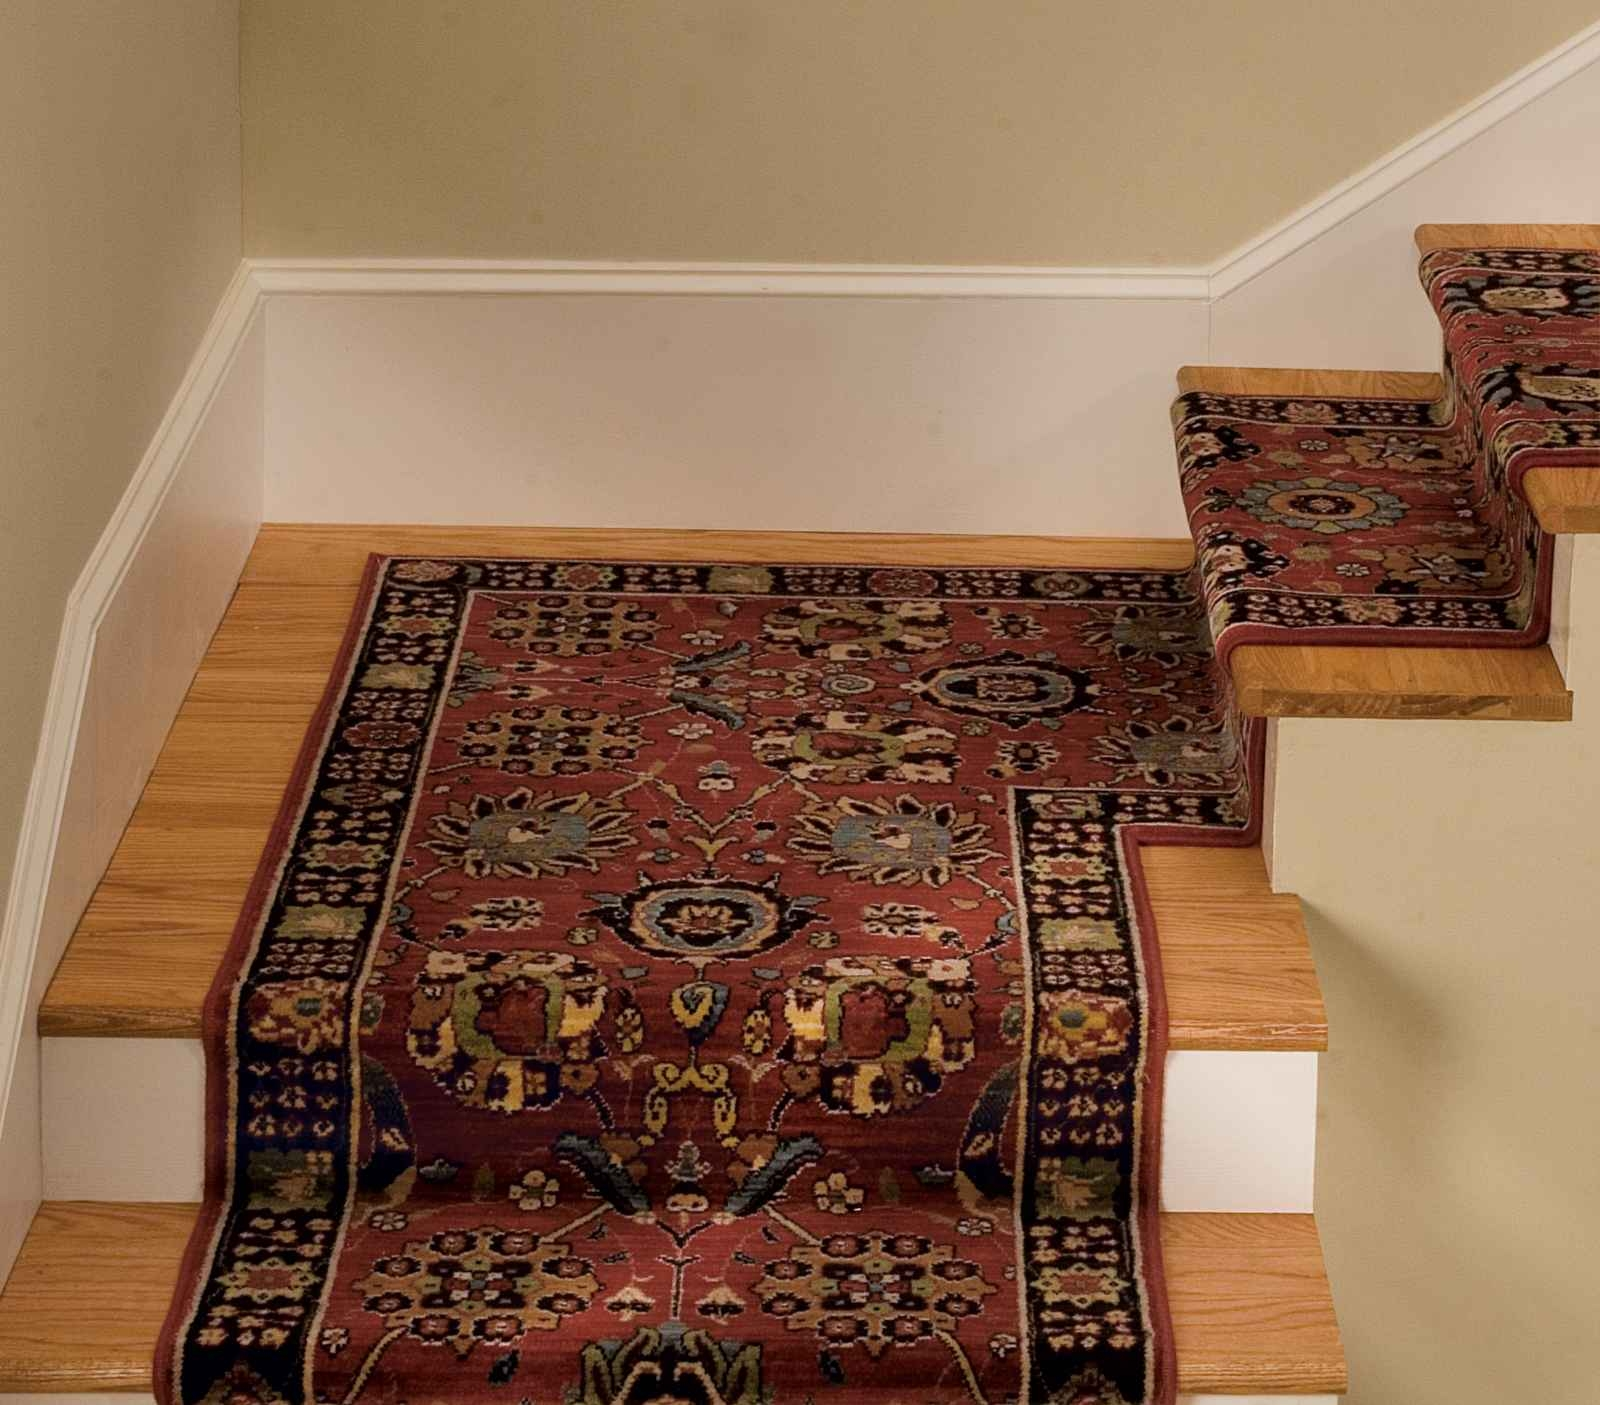 Carpet Stair Runner For Home New Home Pinterest Stair Treads Regarding Stair Tread Carpet Runners (Image 3 of 15)